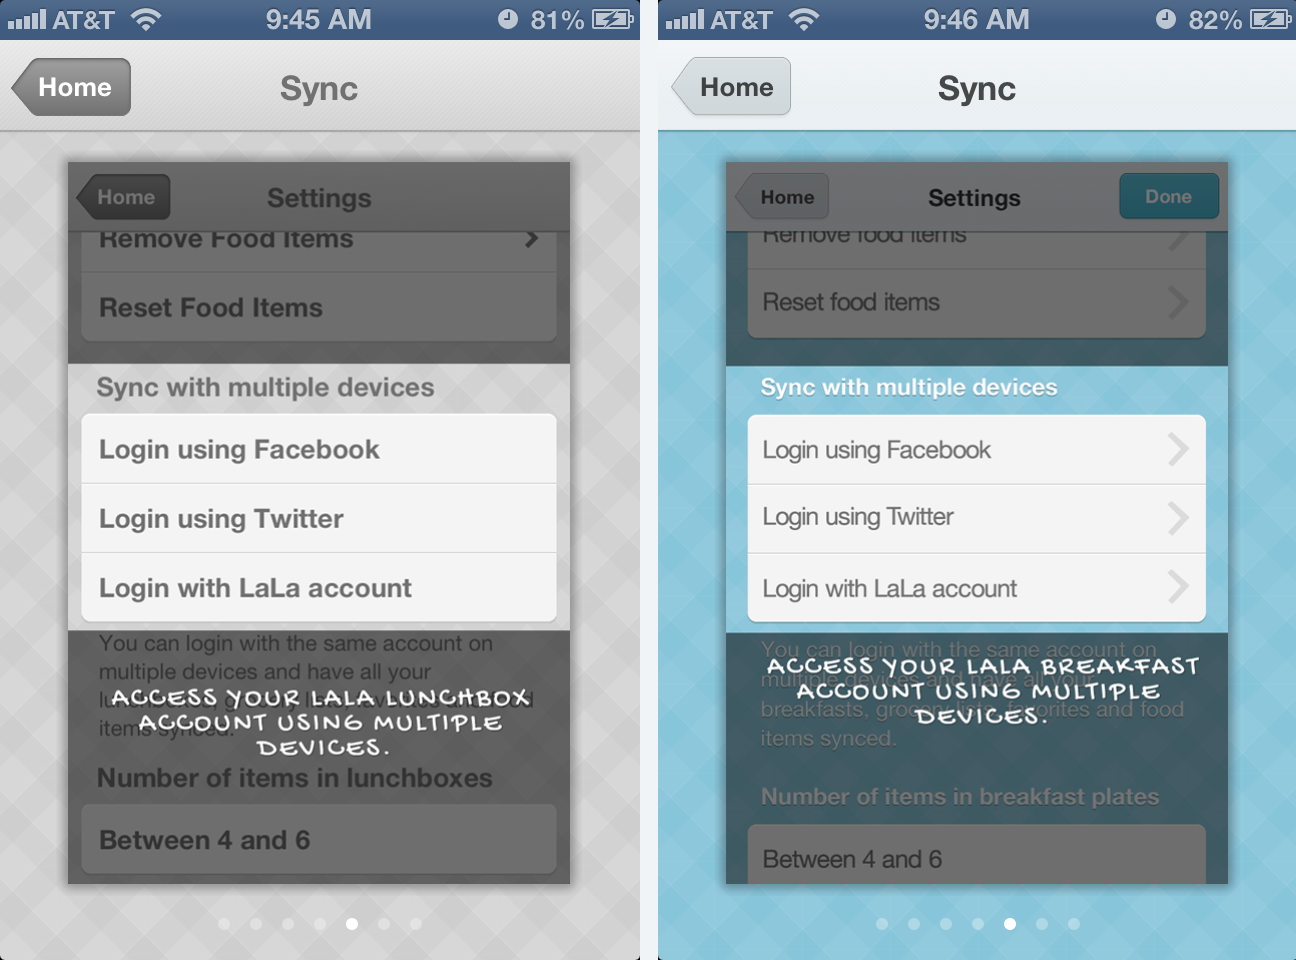 Sync using multiple devices to access Lunchbox and Breakfast meals and grocery lists.